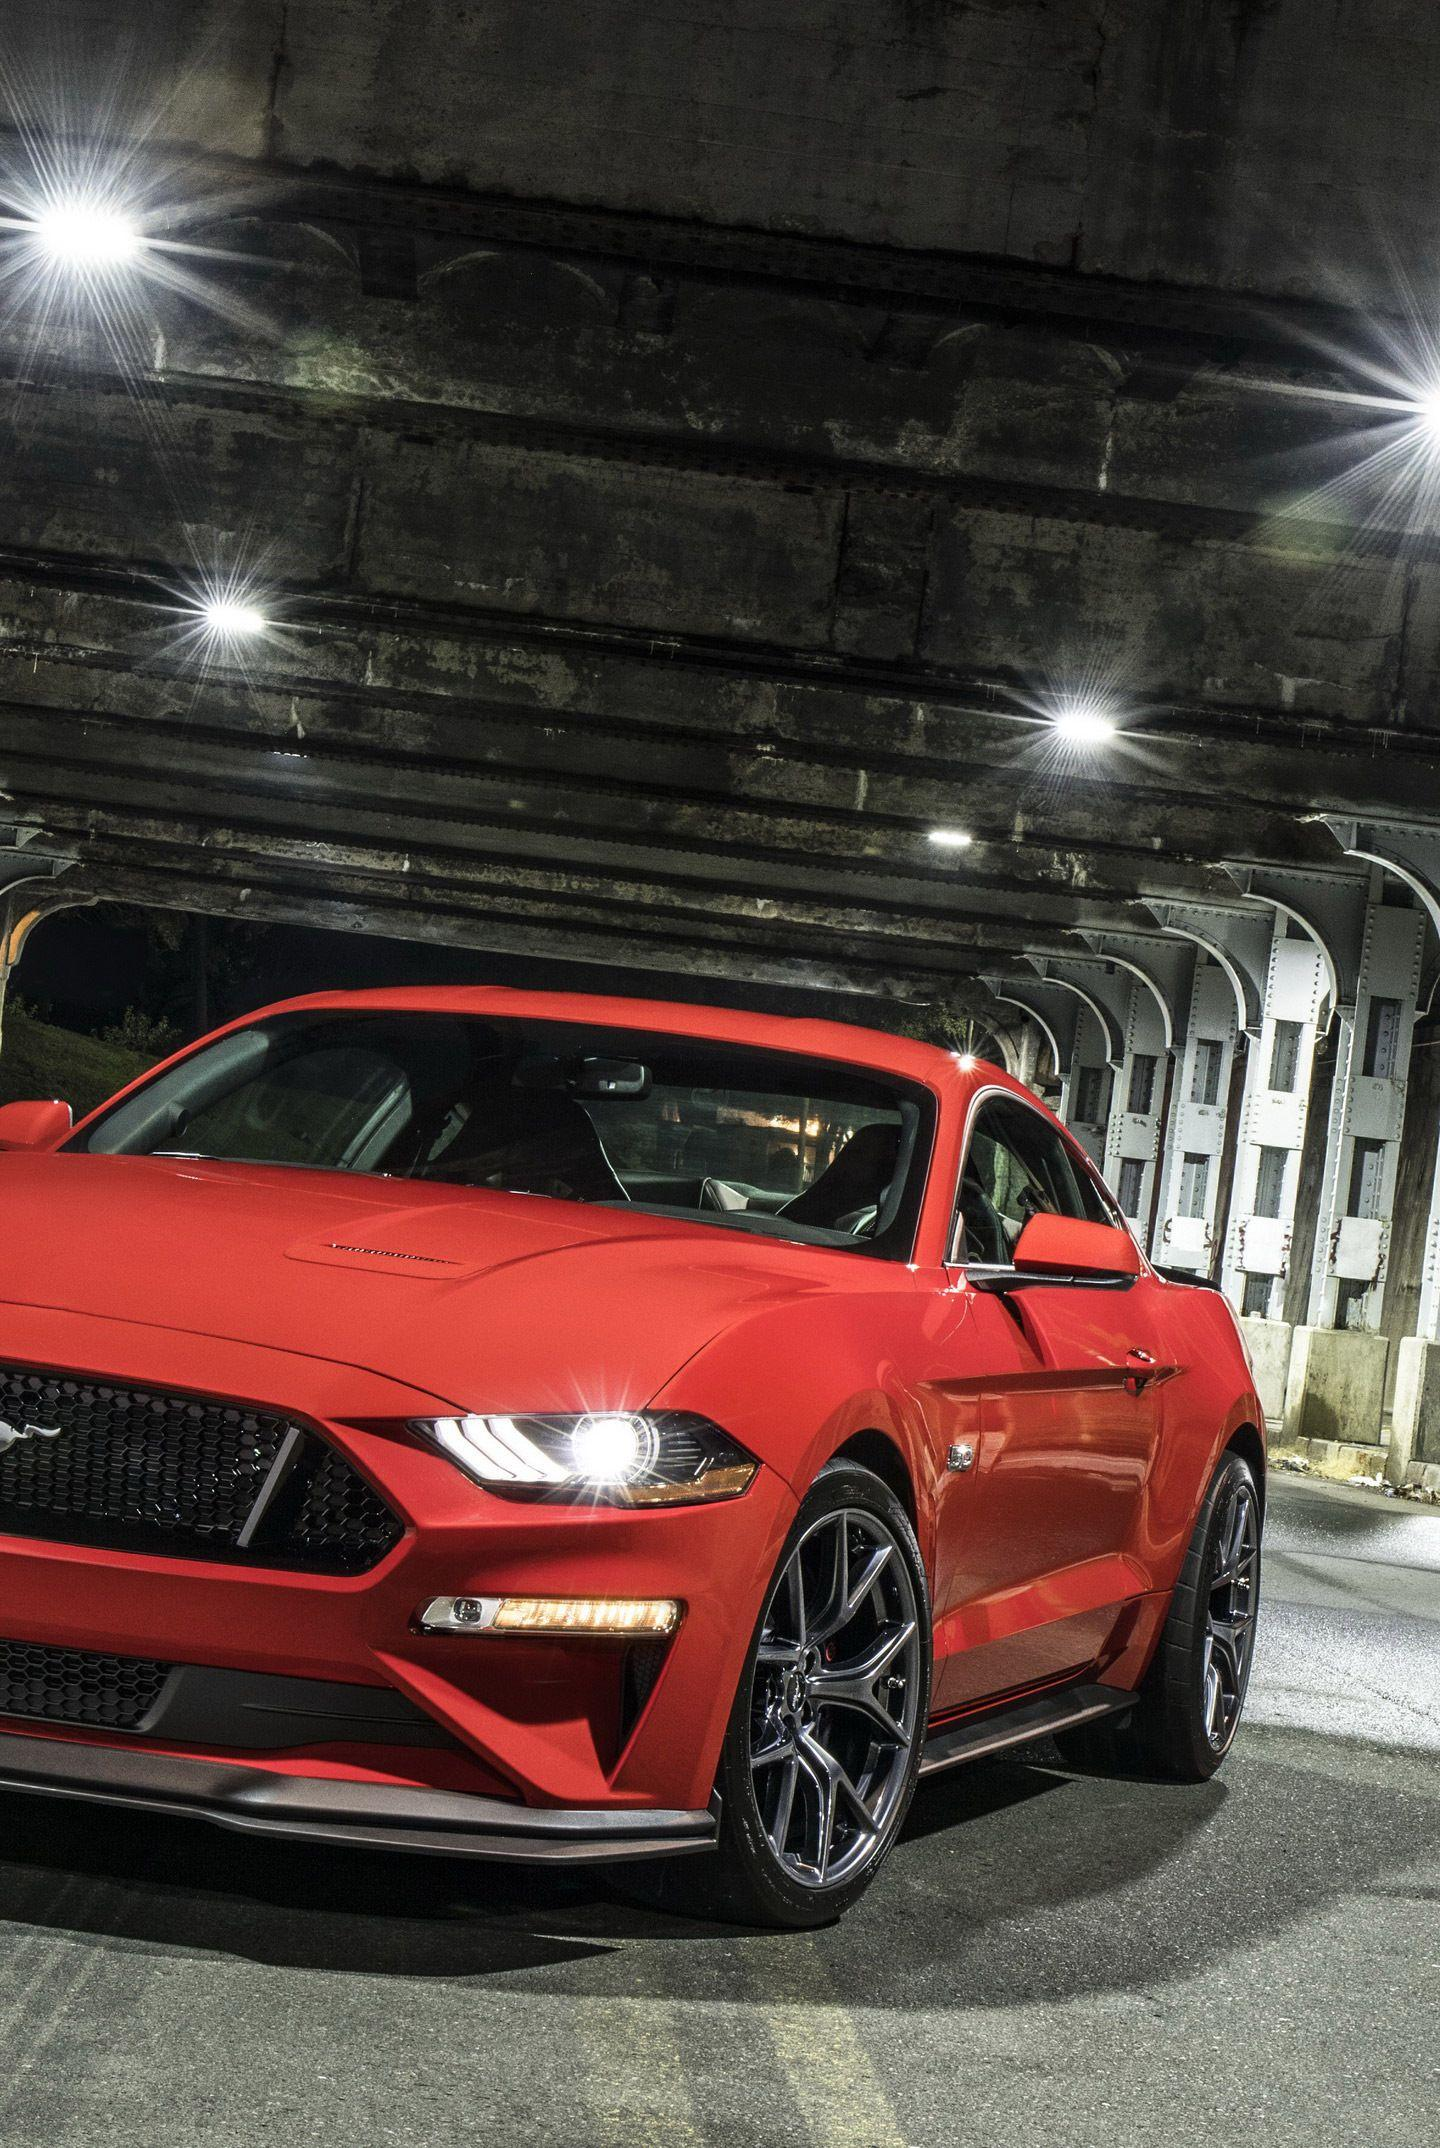 Download 1440x2960 wallpapers 2018 ford mustang gt performance